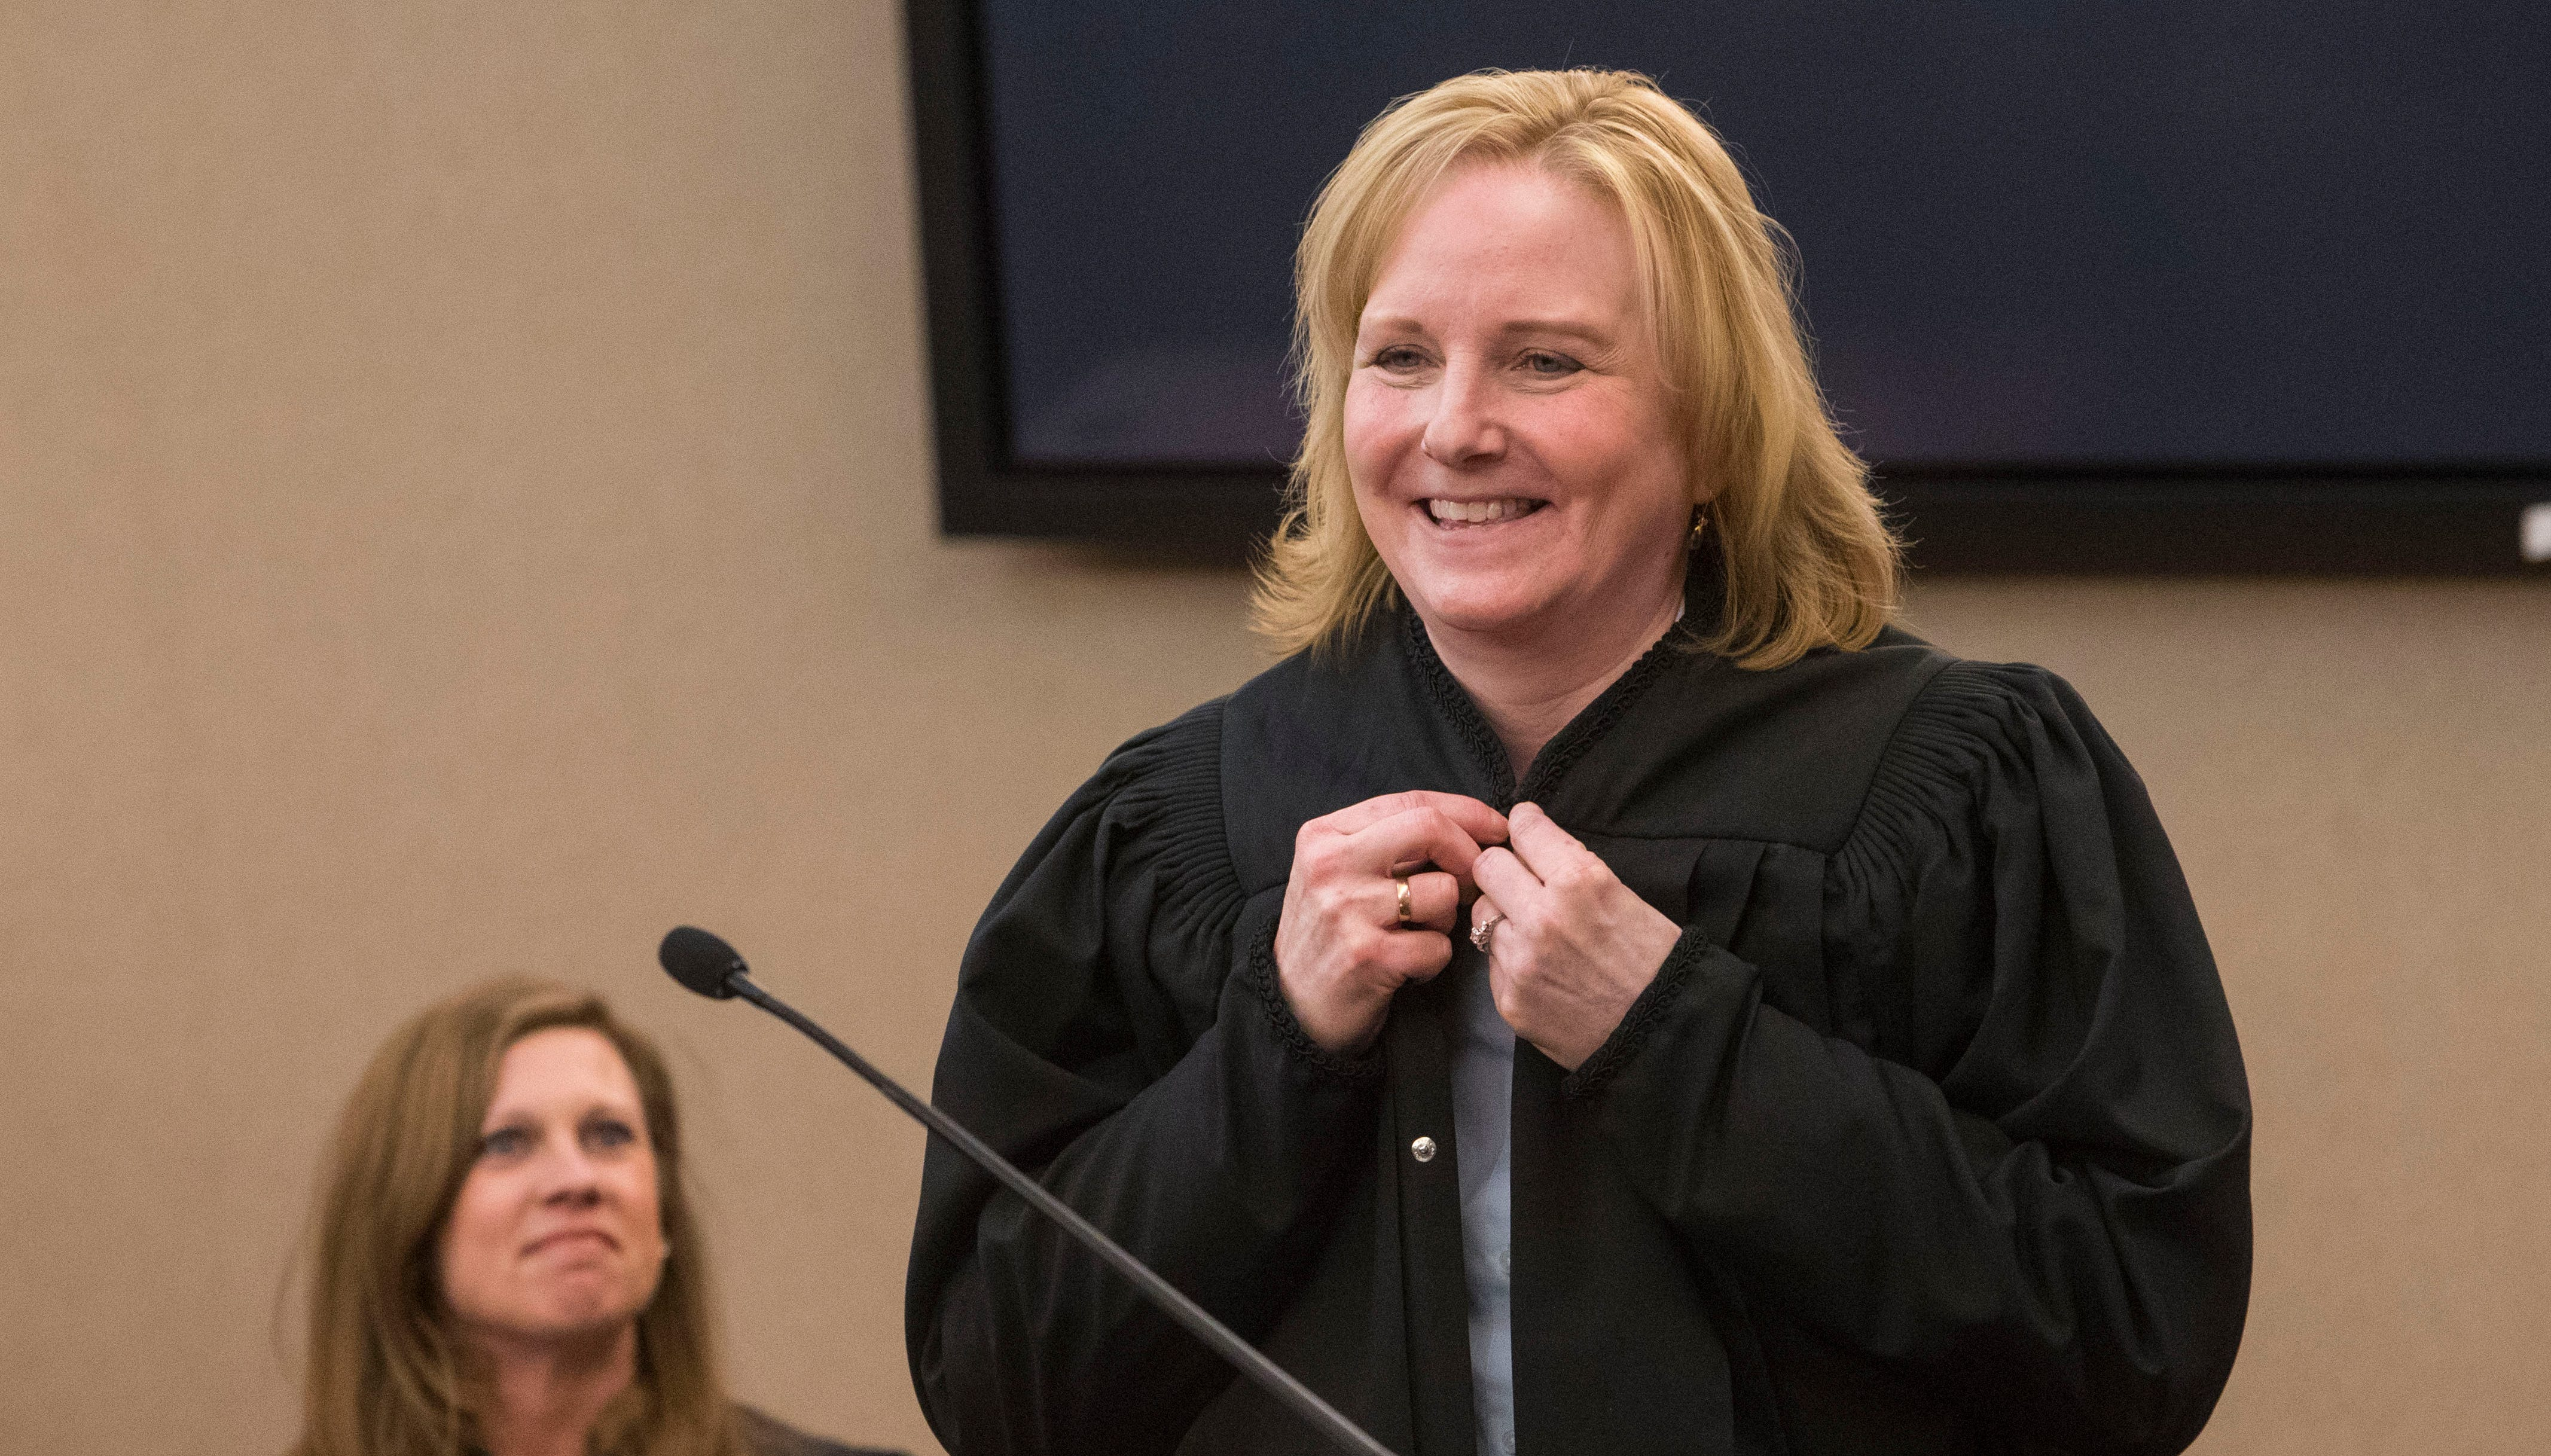 Sandra Hoglund Hanson puts on her robe after being sworn in as new circuit court judge at the Minnehaha County Clerk-Courts in Sioux Falls, S.D., Friday, Dec. 14, 2018.